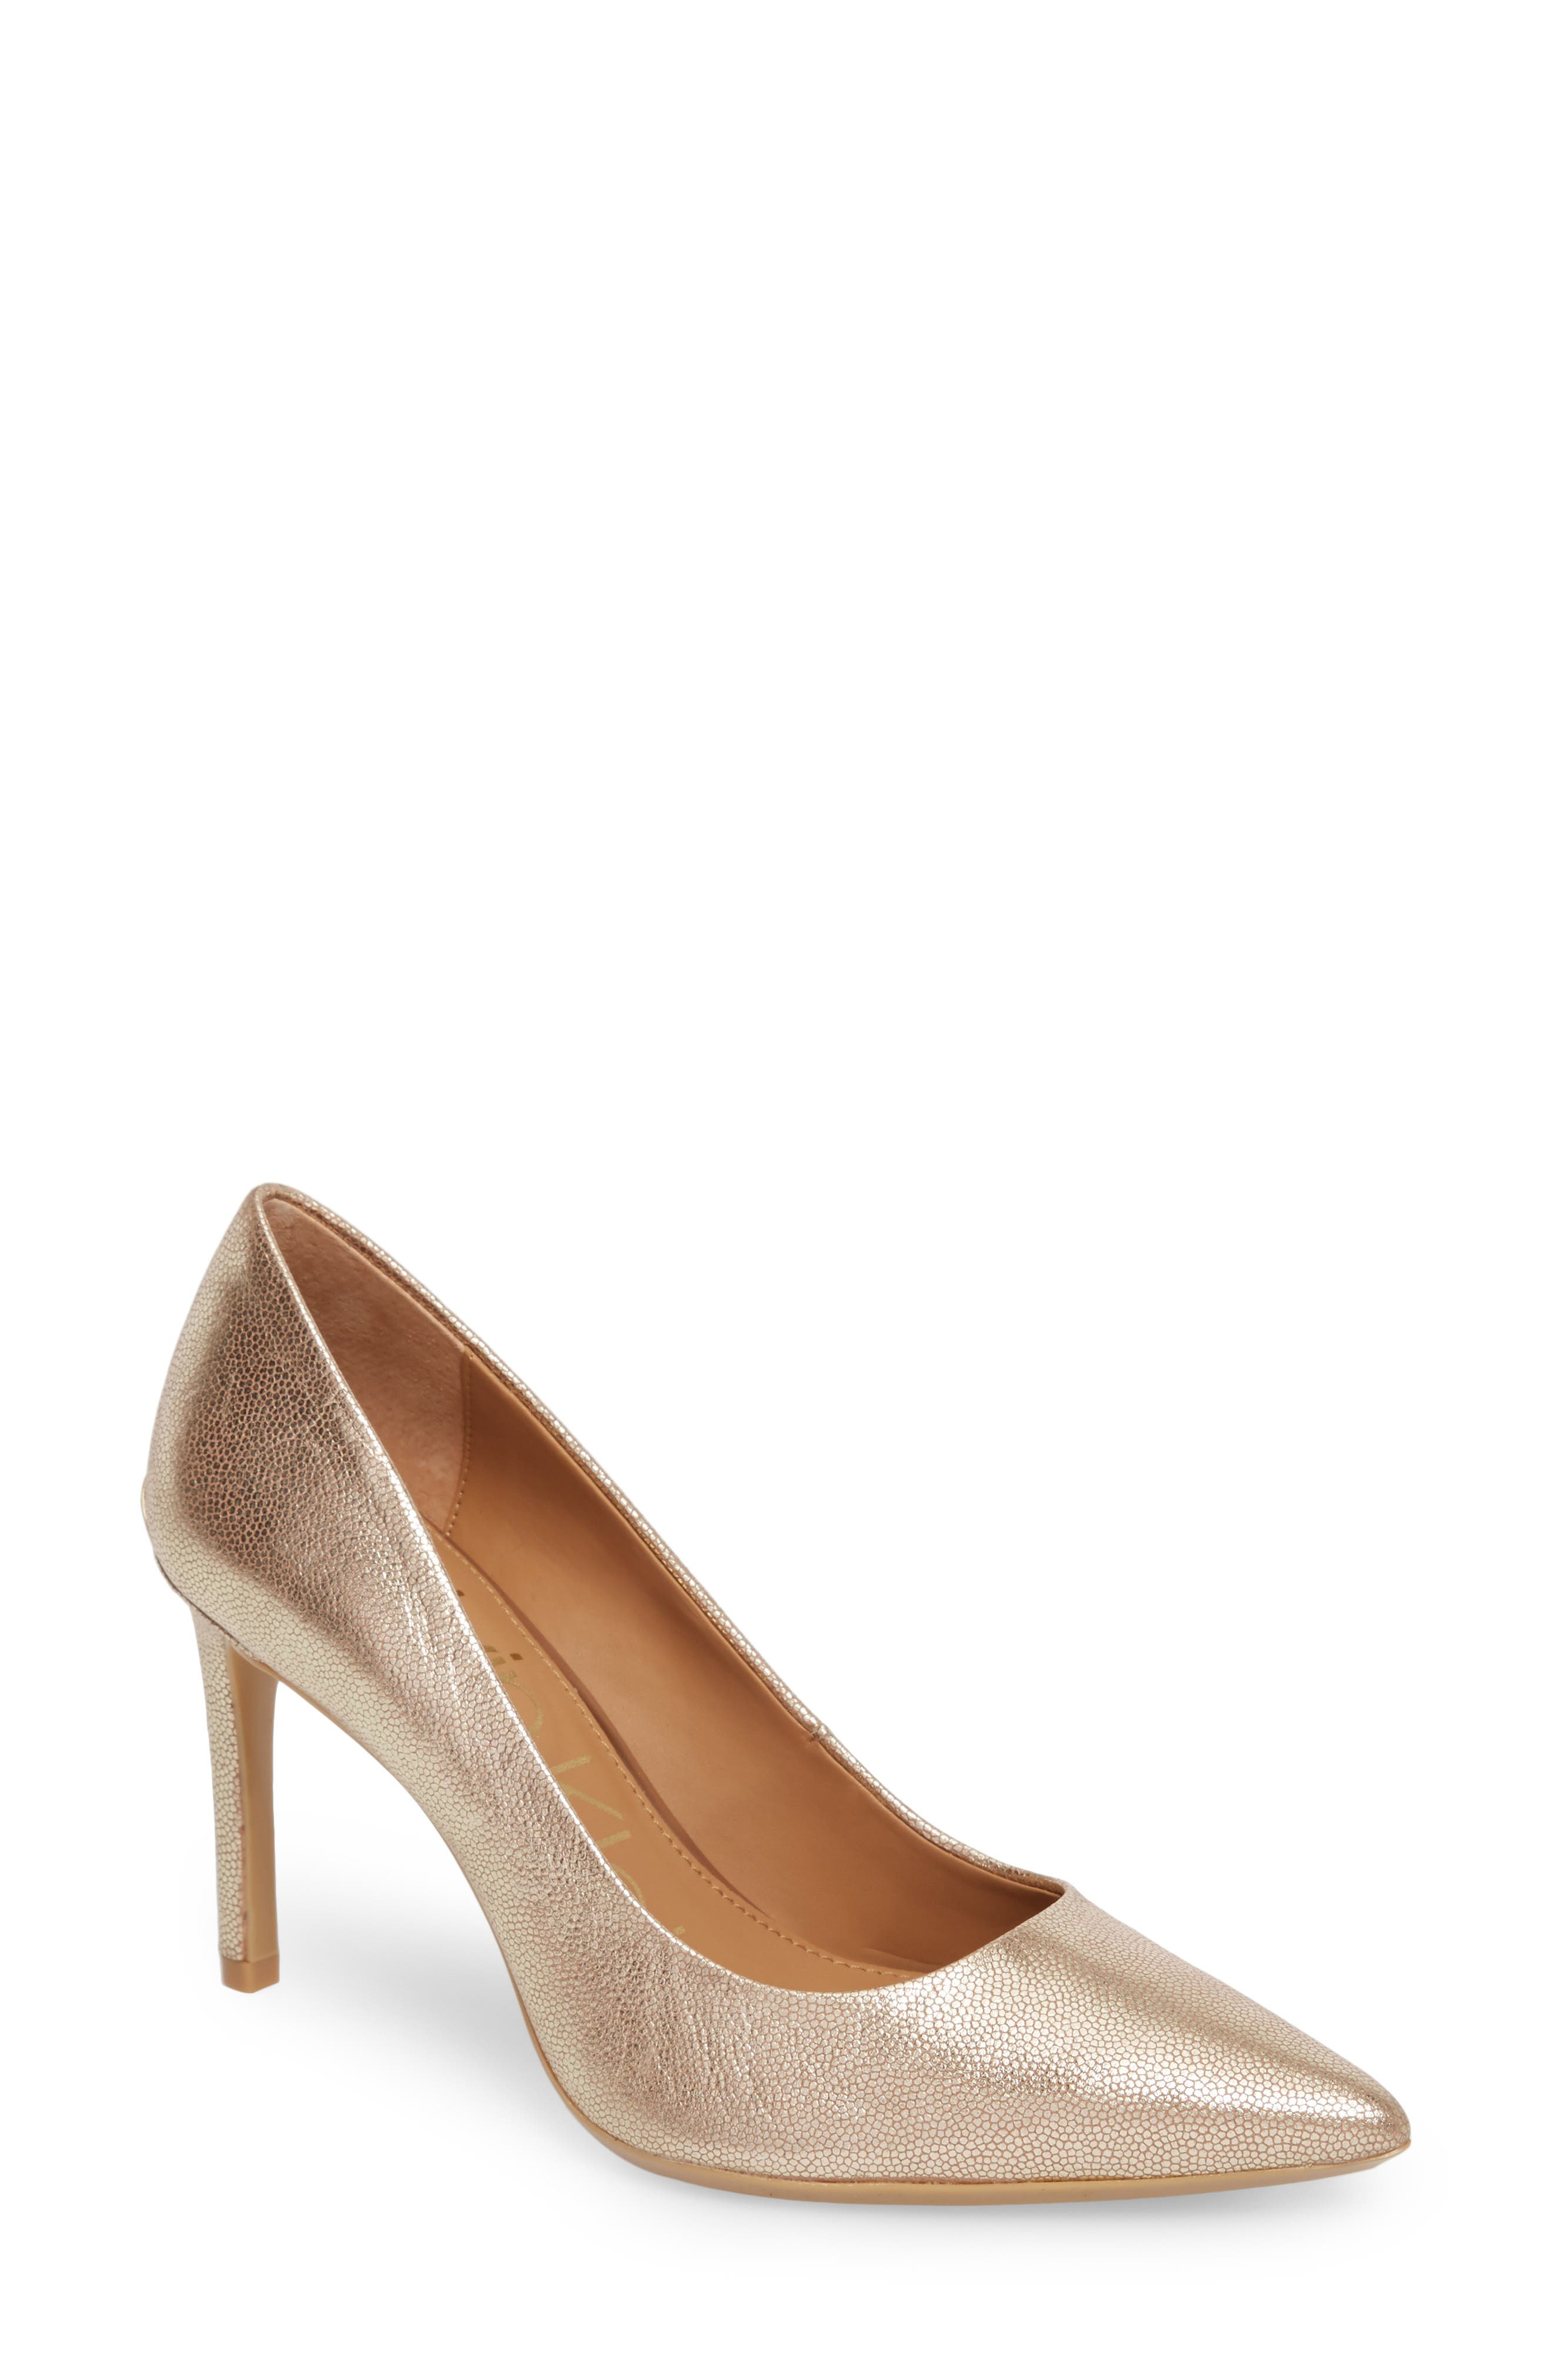 Ronna Pointy Toe Pump,                             Main thumbnail 1, color,                             PLATINUM LEATHER